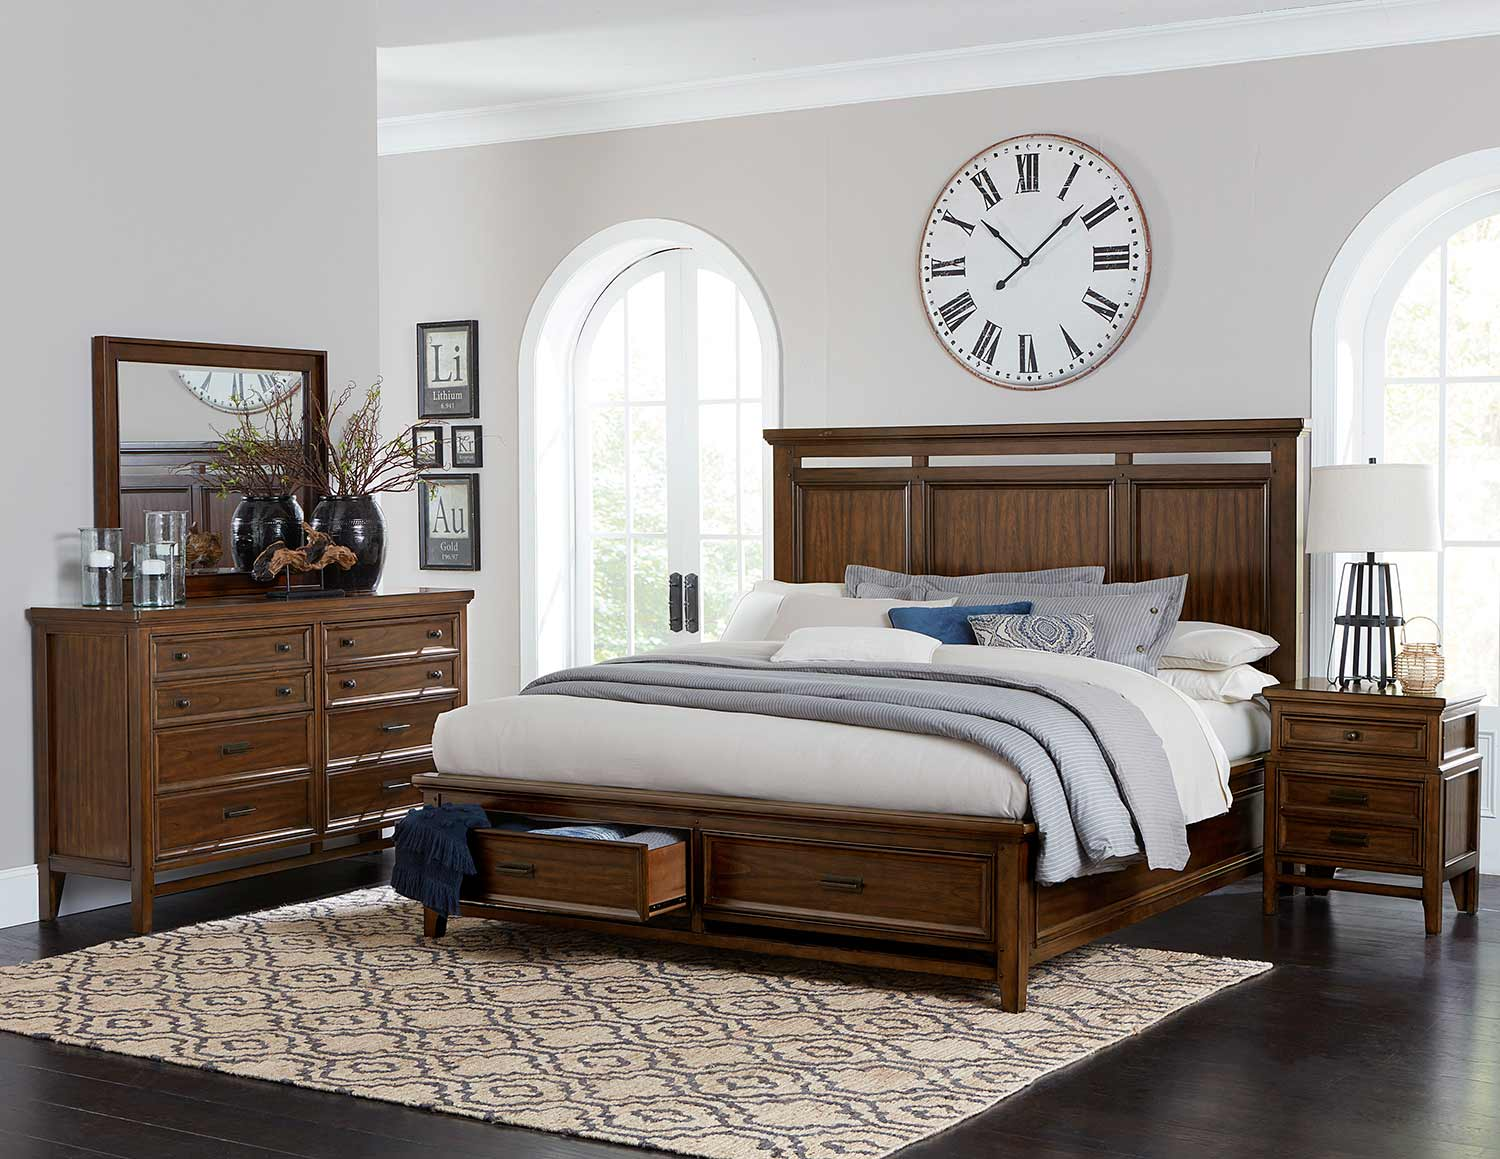 Homelegance Frazier Park Bedroom Set - Brown Cherry